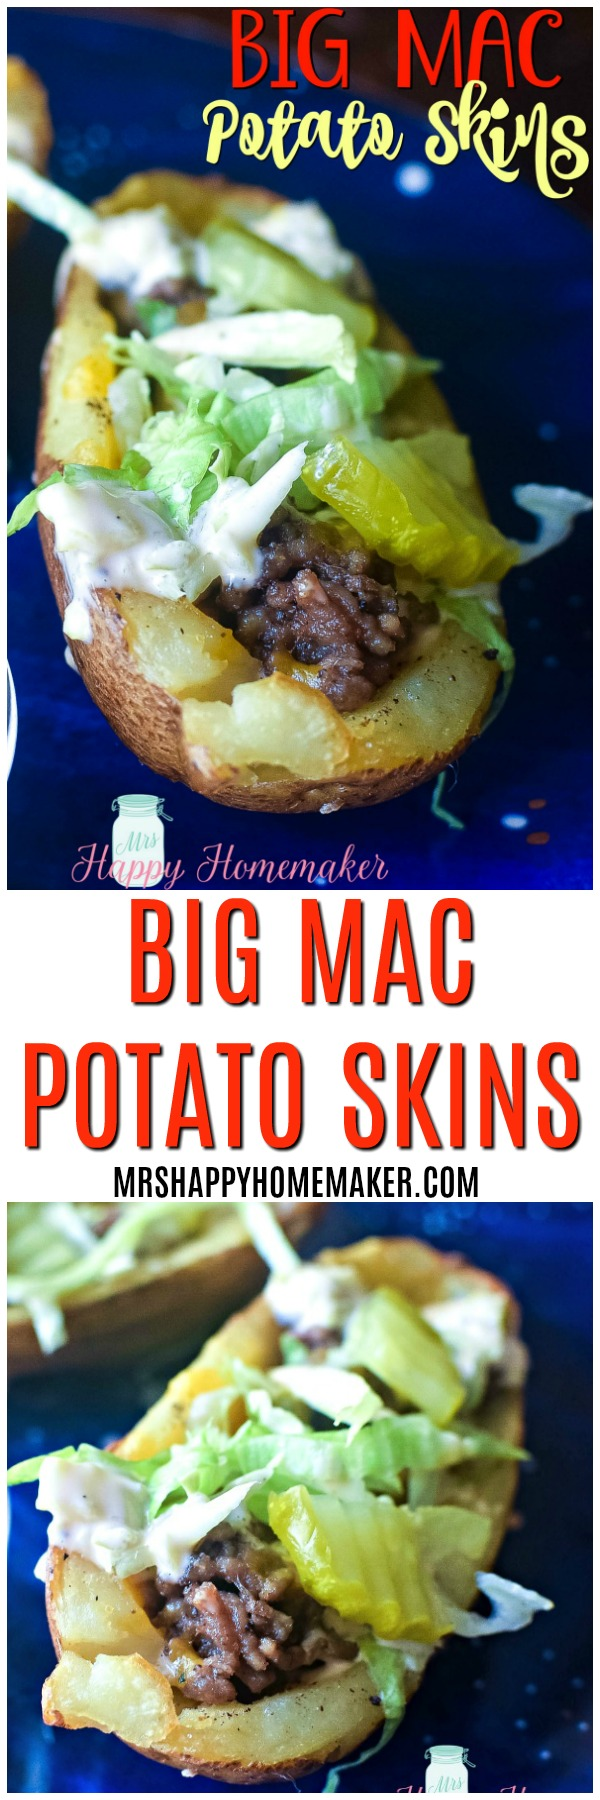 Big Mac Potato Skins - with beef, lettuce, special sauce, pickles, & sesame seeds! You can even make them Whole30/Paleo friendly if you like. SO good! | MrsHappyHomemaker.com @MrsHappyHomemaker #bigmac #bigmacpotatoskins #whole30 #paleo #football #footballfood